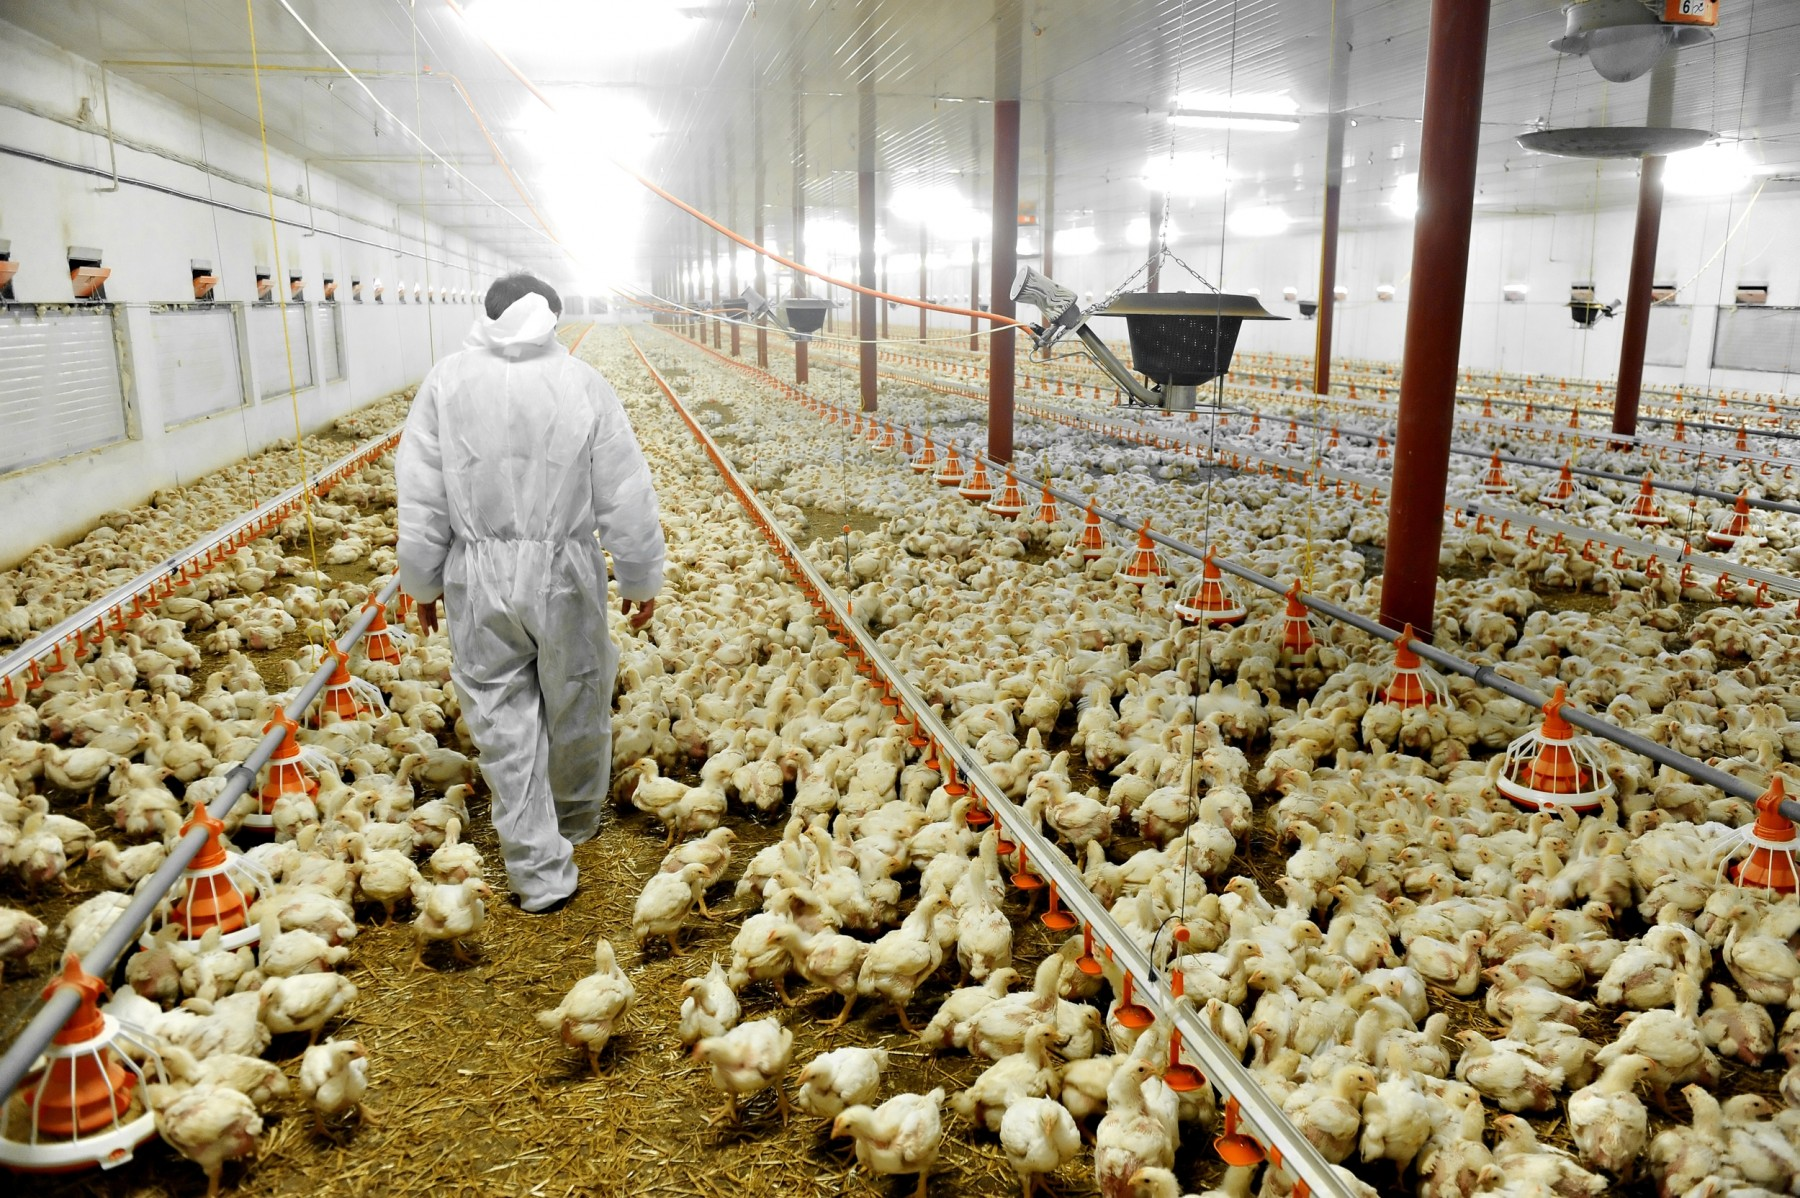 Man walking through crowded chicken shed - World Animal Protection